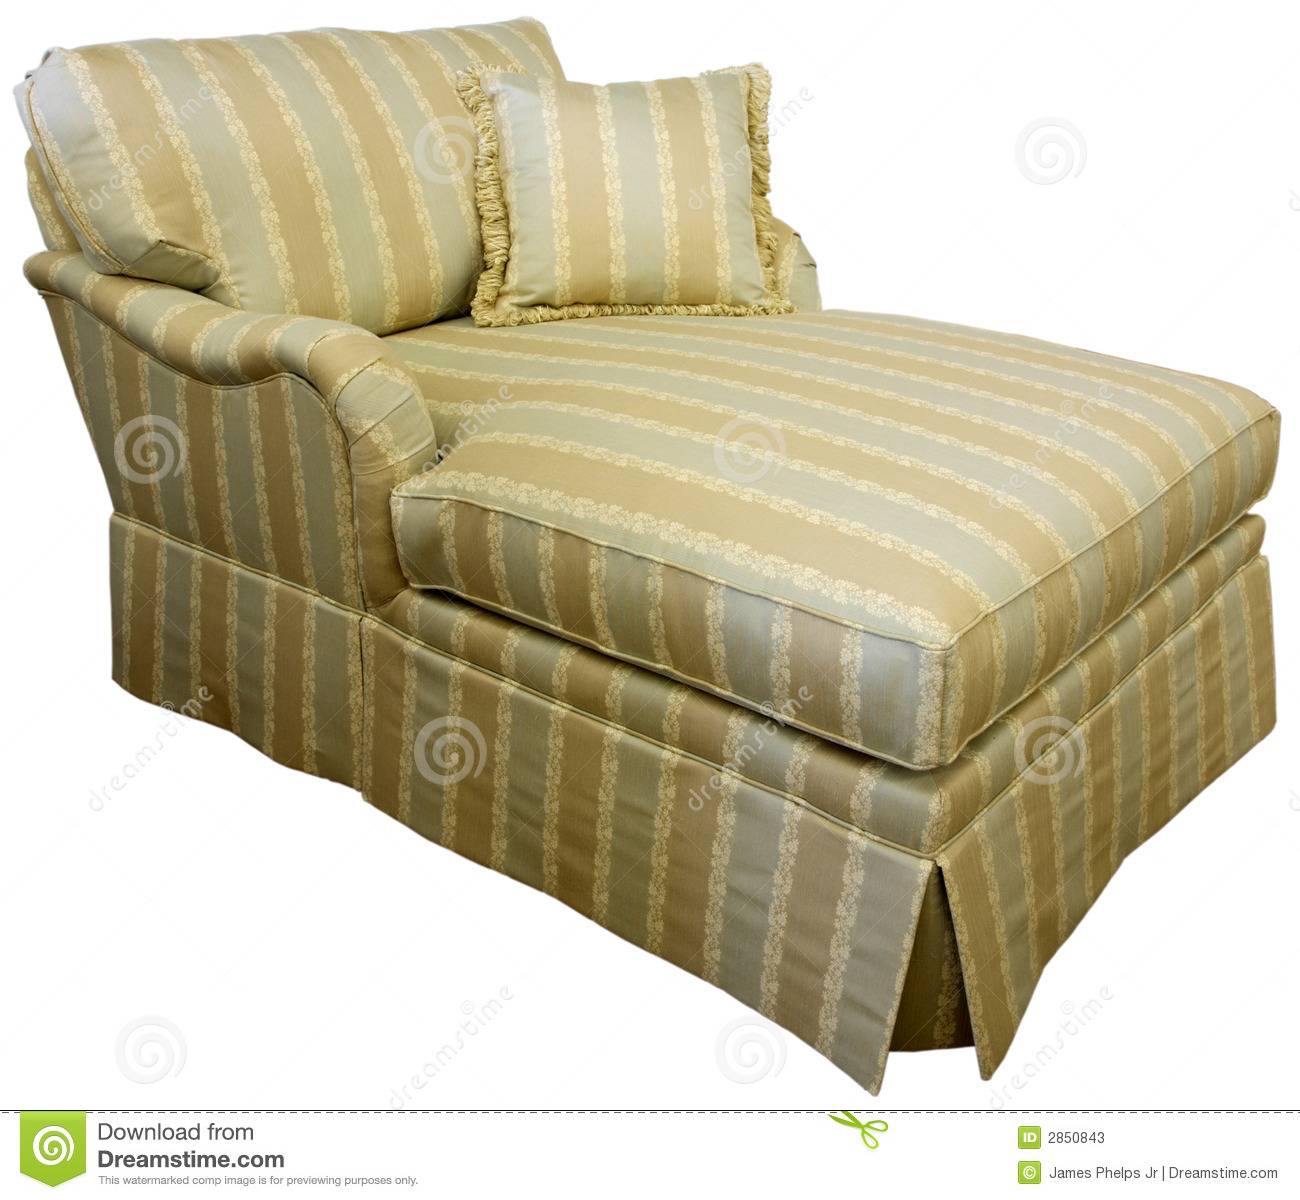 antwerp chaise sofa bed lounge sofas on credit online uk stock image of stuffed